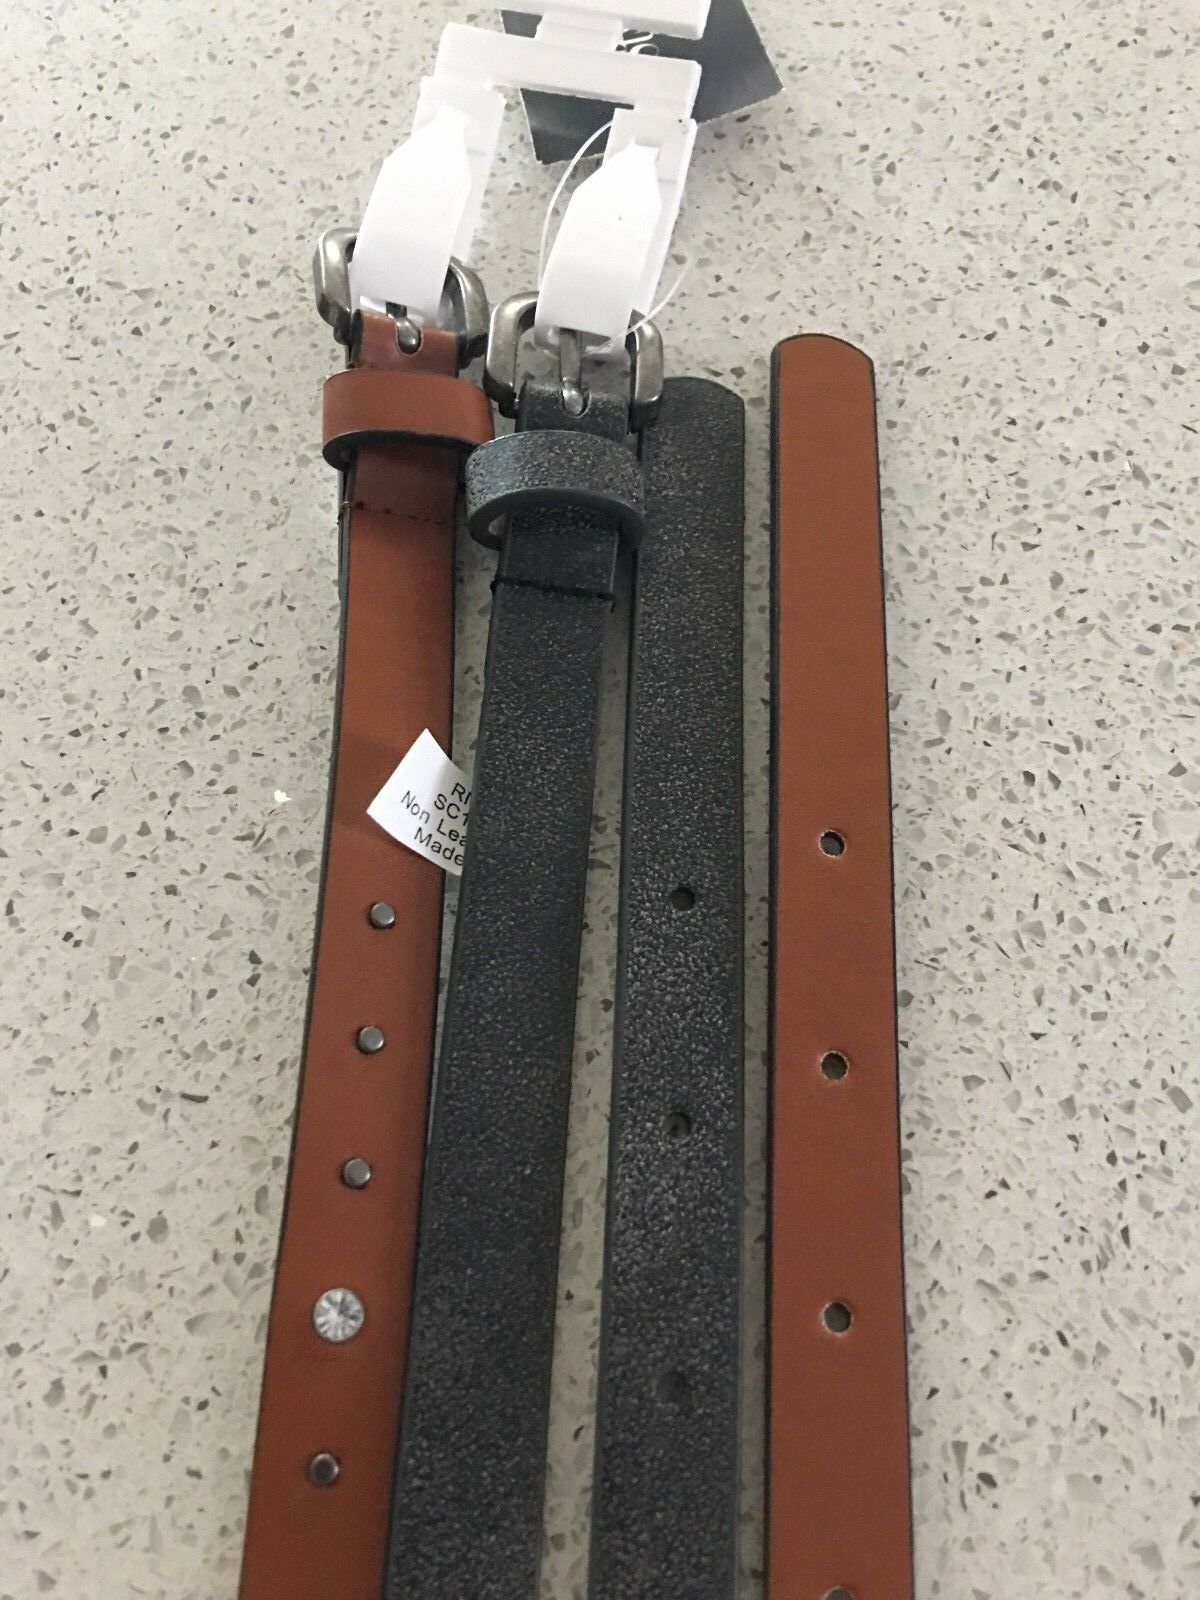 (NWT) Style&Co Rhinestud 2 for 1 Skinny Belts Black & Cognac Sizes S/M/L/XL